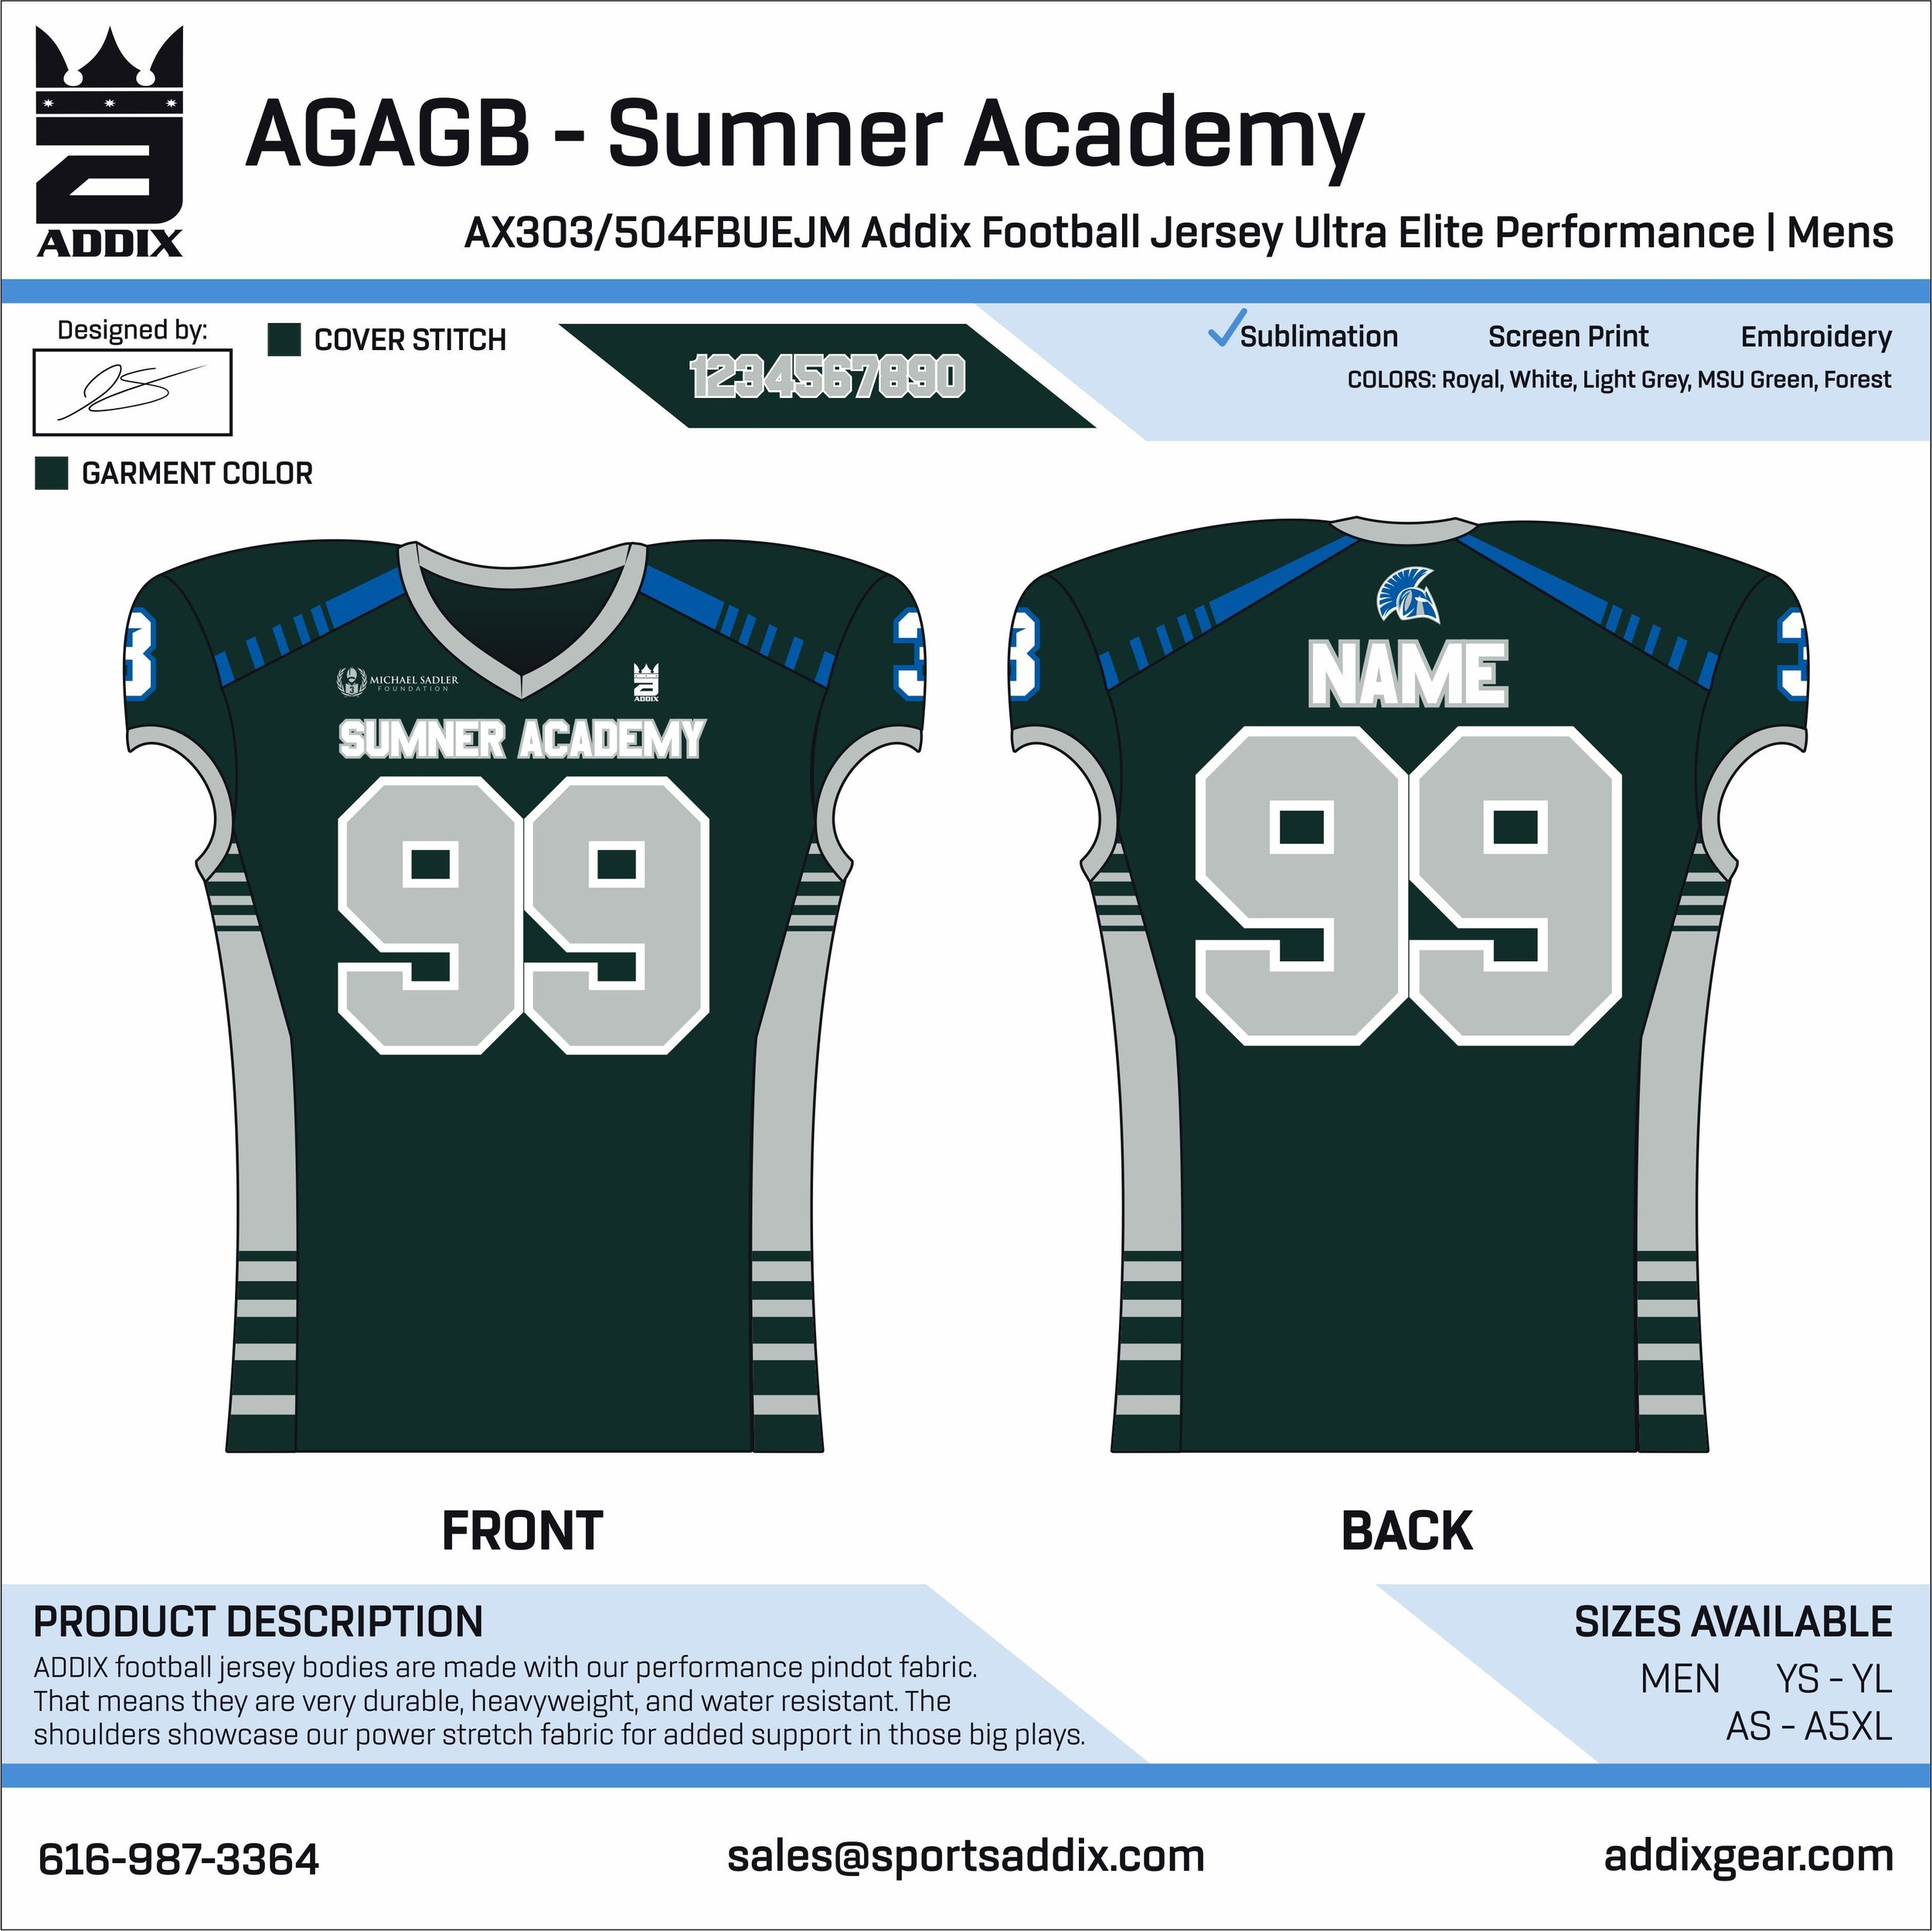 AGAGB - Sumner Academy_2018_6-15_JE_UEP Football Jersey.jpg